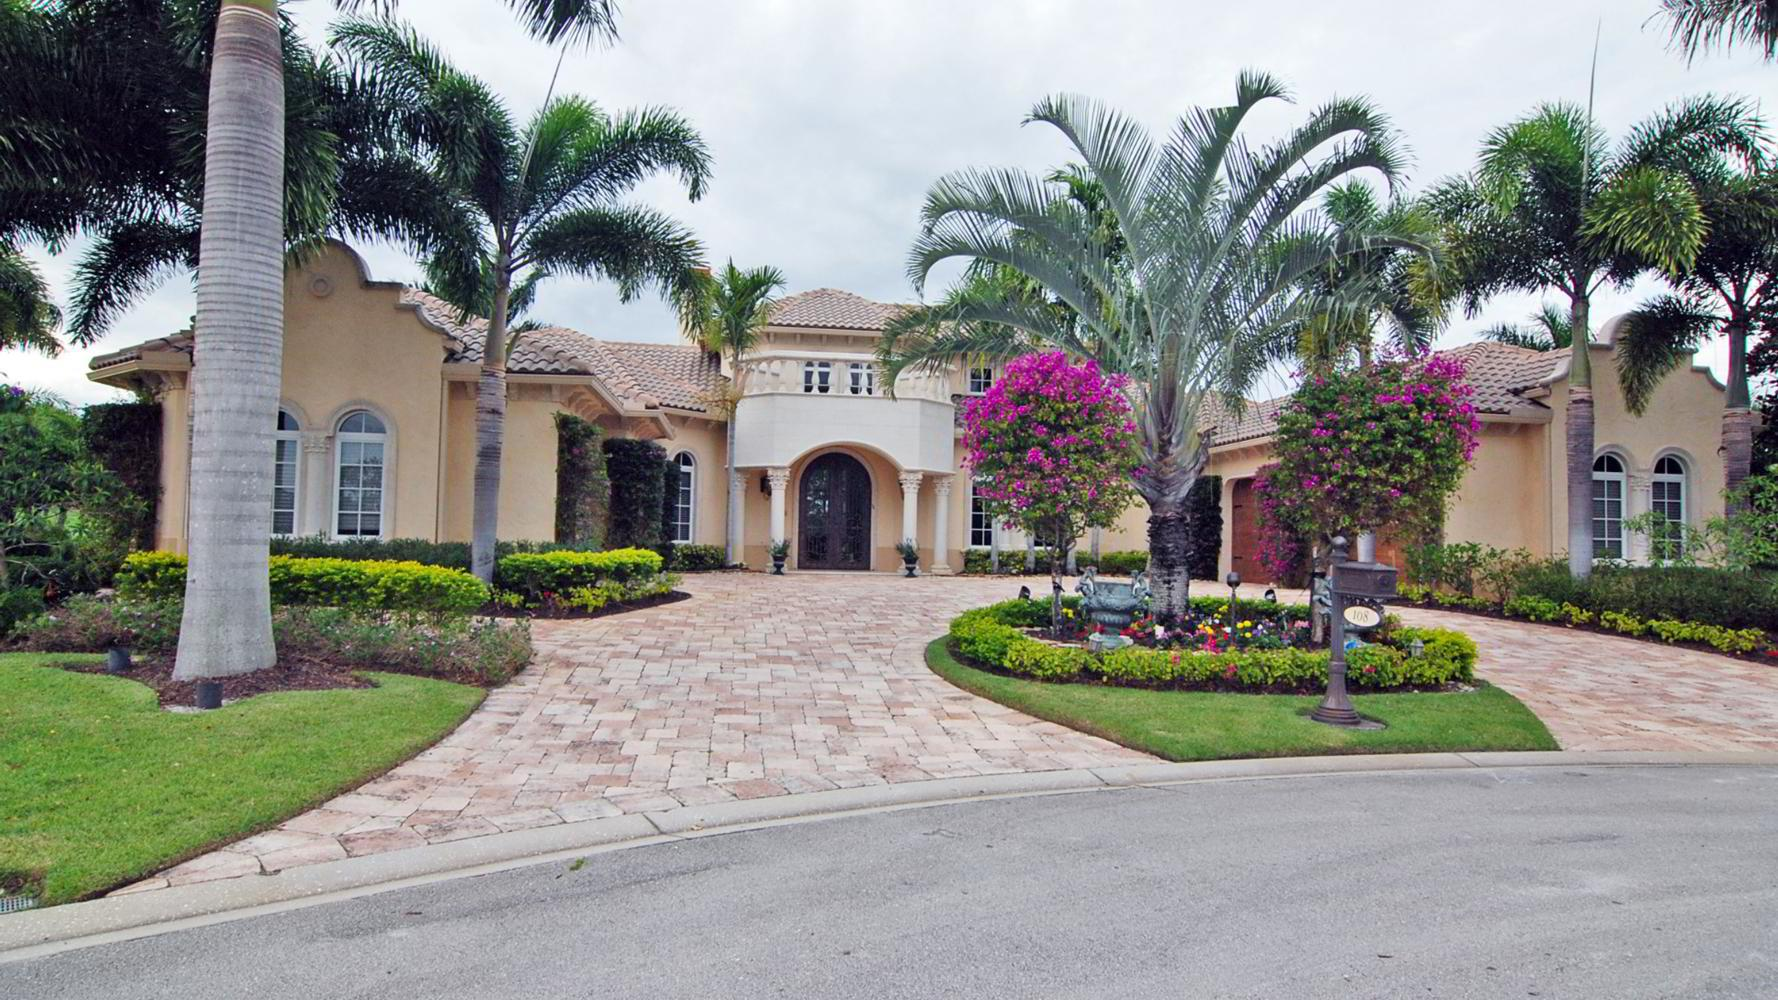 Mansion of the Week: 108 SE Santa Lucia